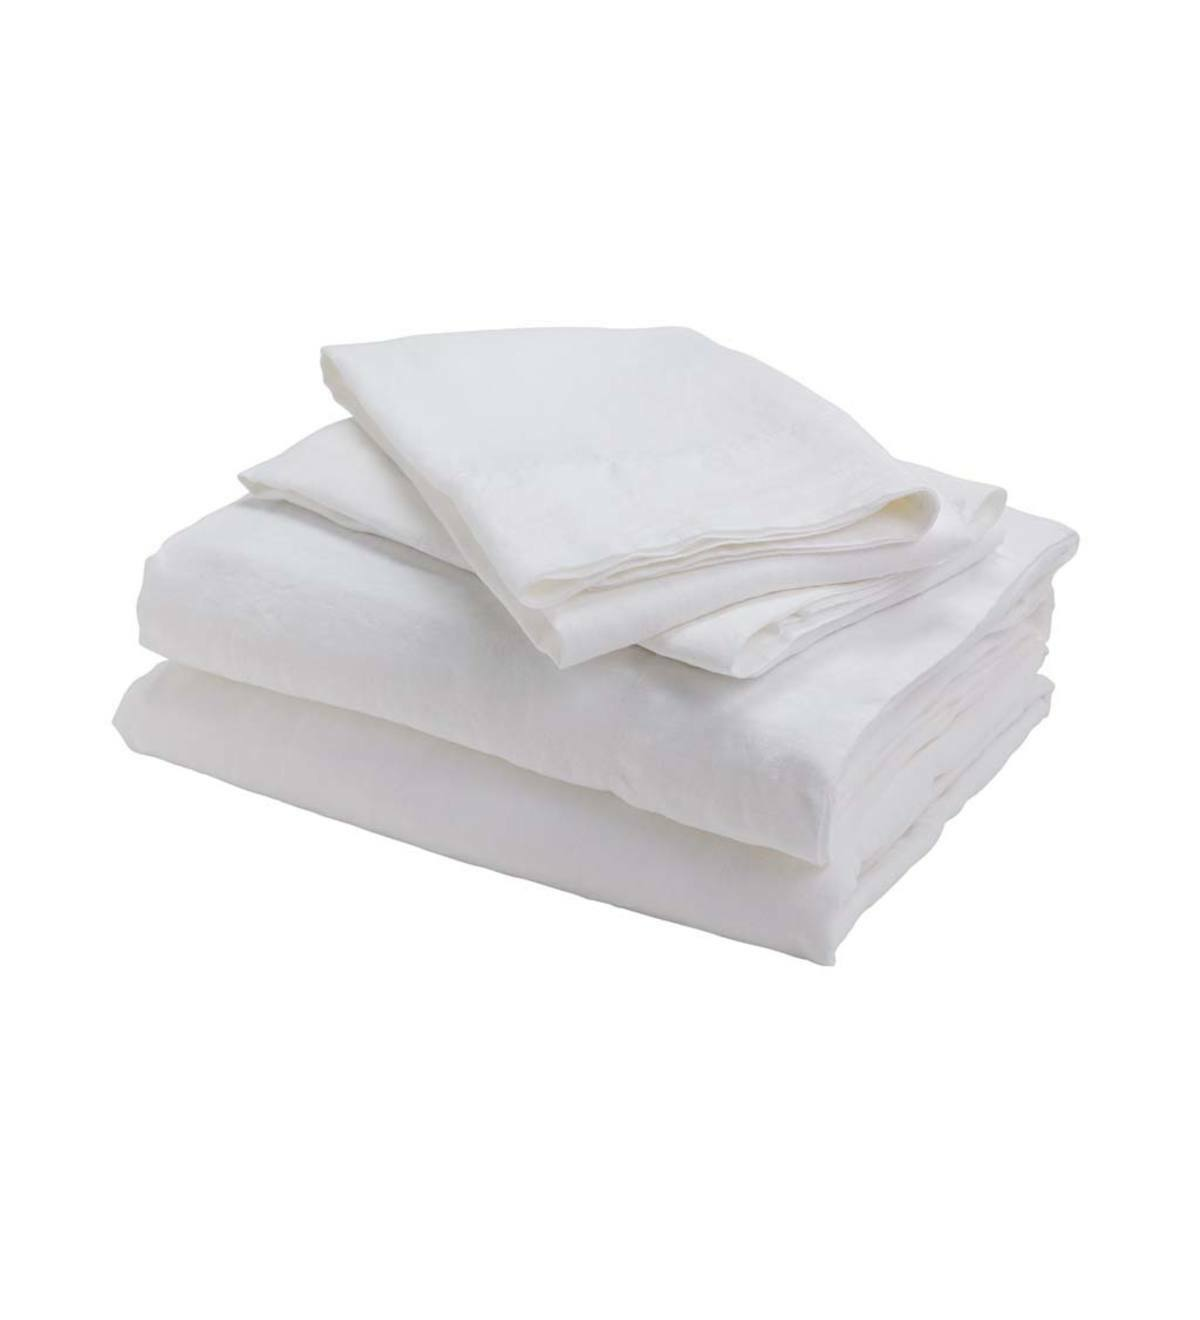 Bambeco 100% Natural European Flax Linen Sheet Set blanc Queen Made in Portugal